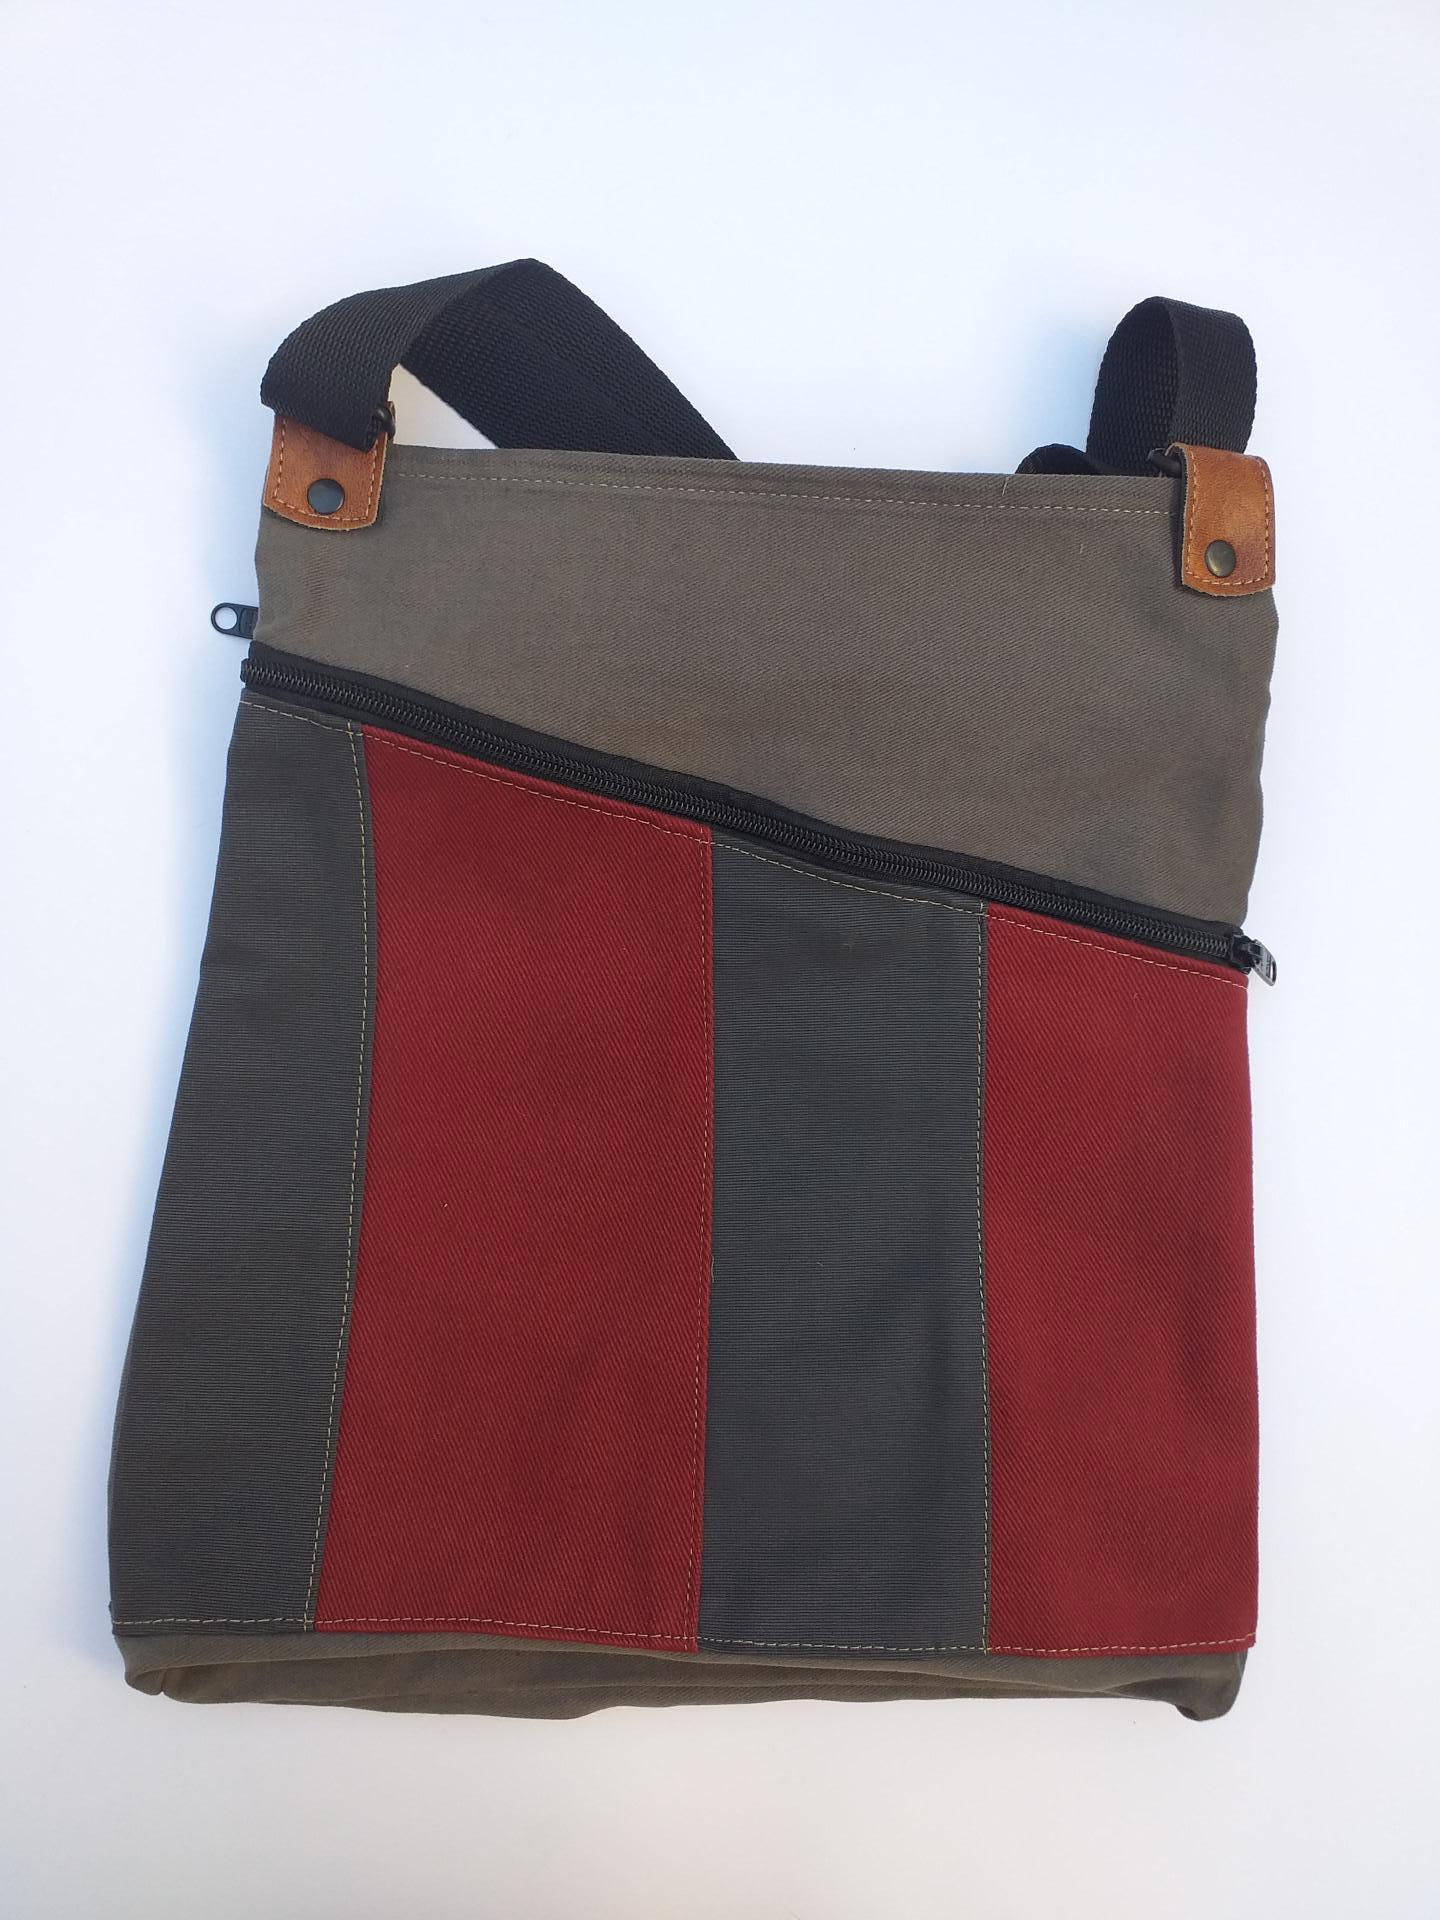 BACKPACK TRIANGULO RED and GRAY